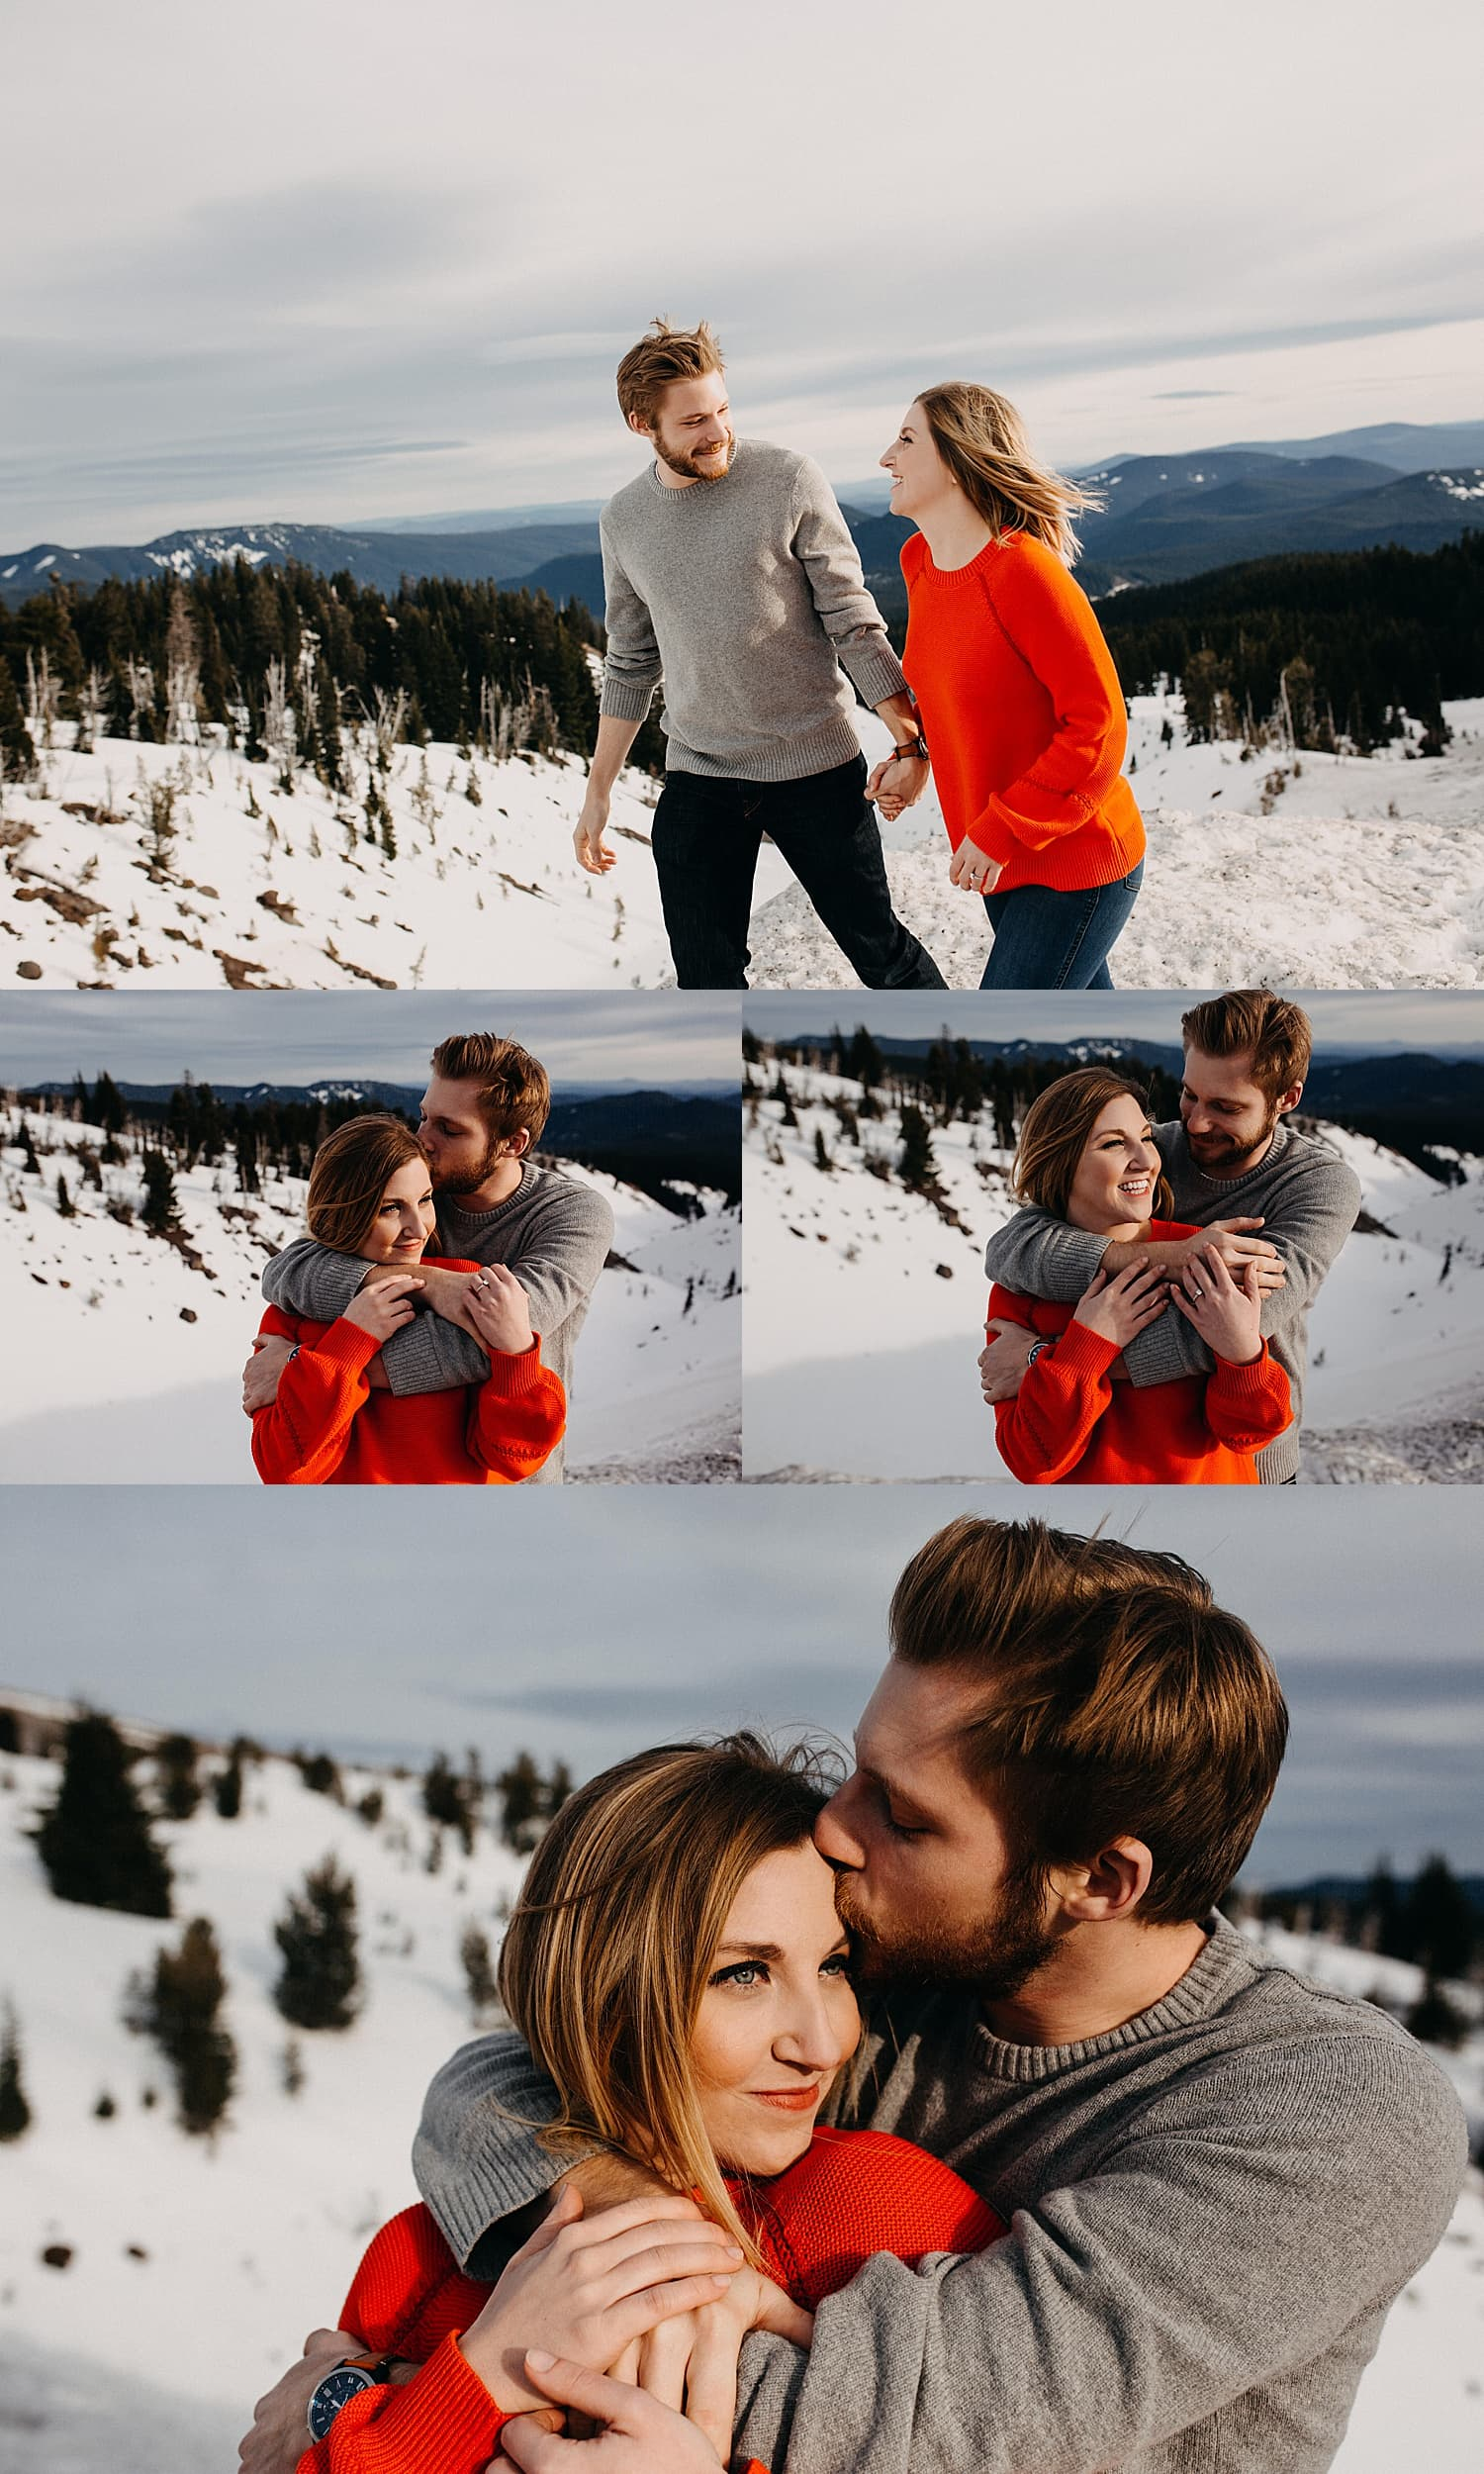 cute couple playing in the snow he's wearing a grew sweater and she's wearing an orange red sweater while he wraps his arms around her